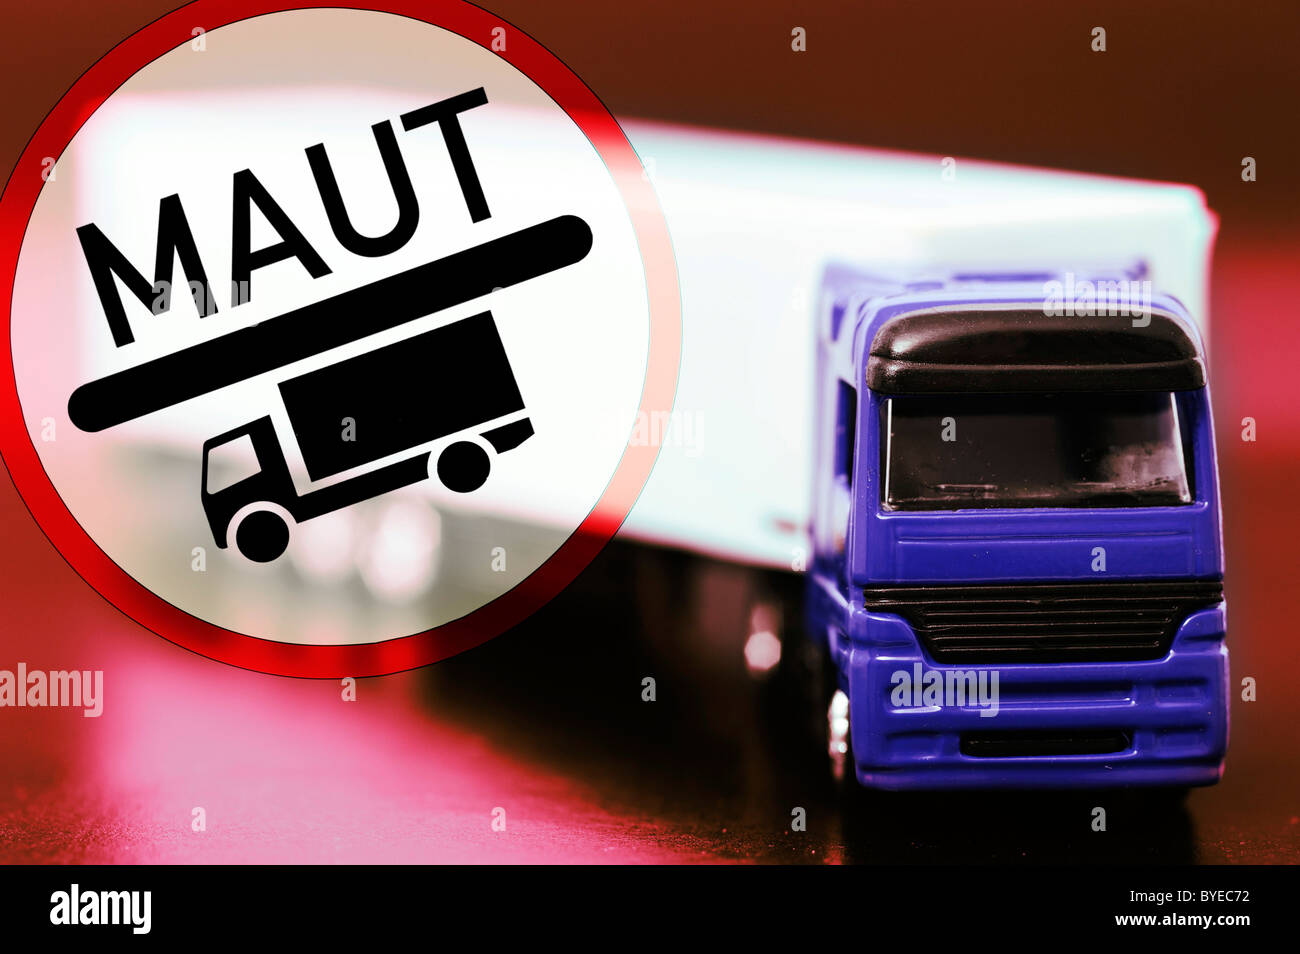 Miniature truck and a road toll sign, symbolic image for trucks paying road toll - Stock Image